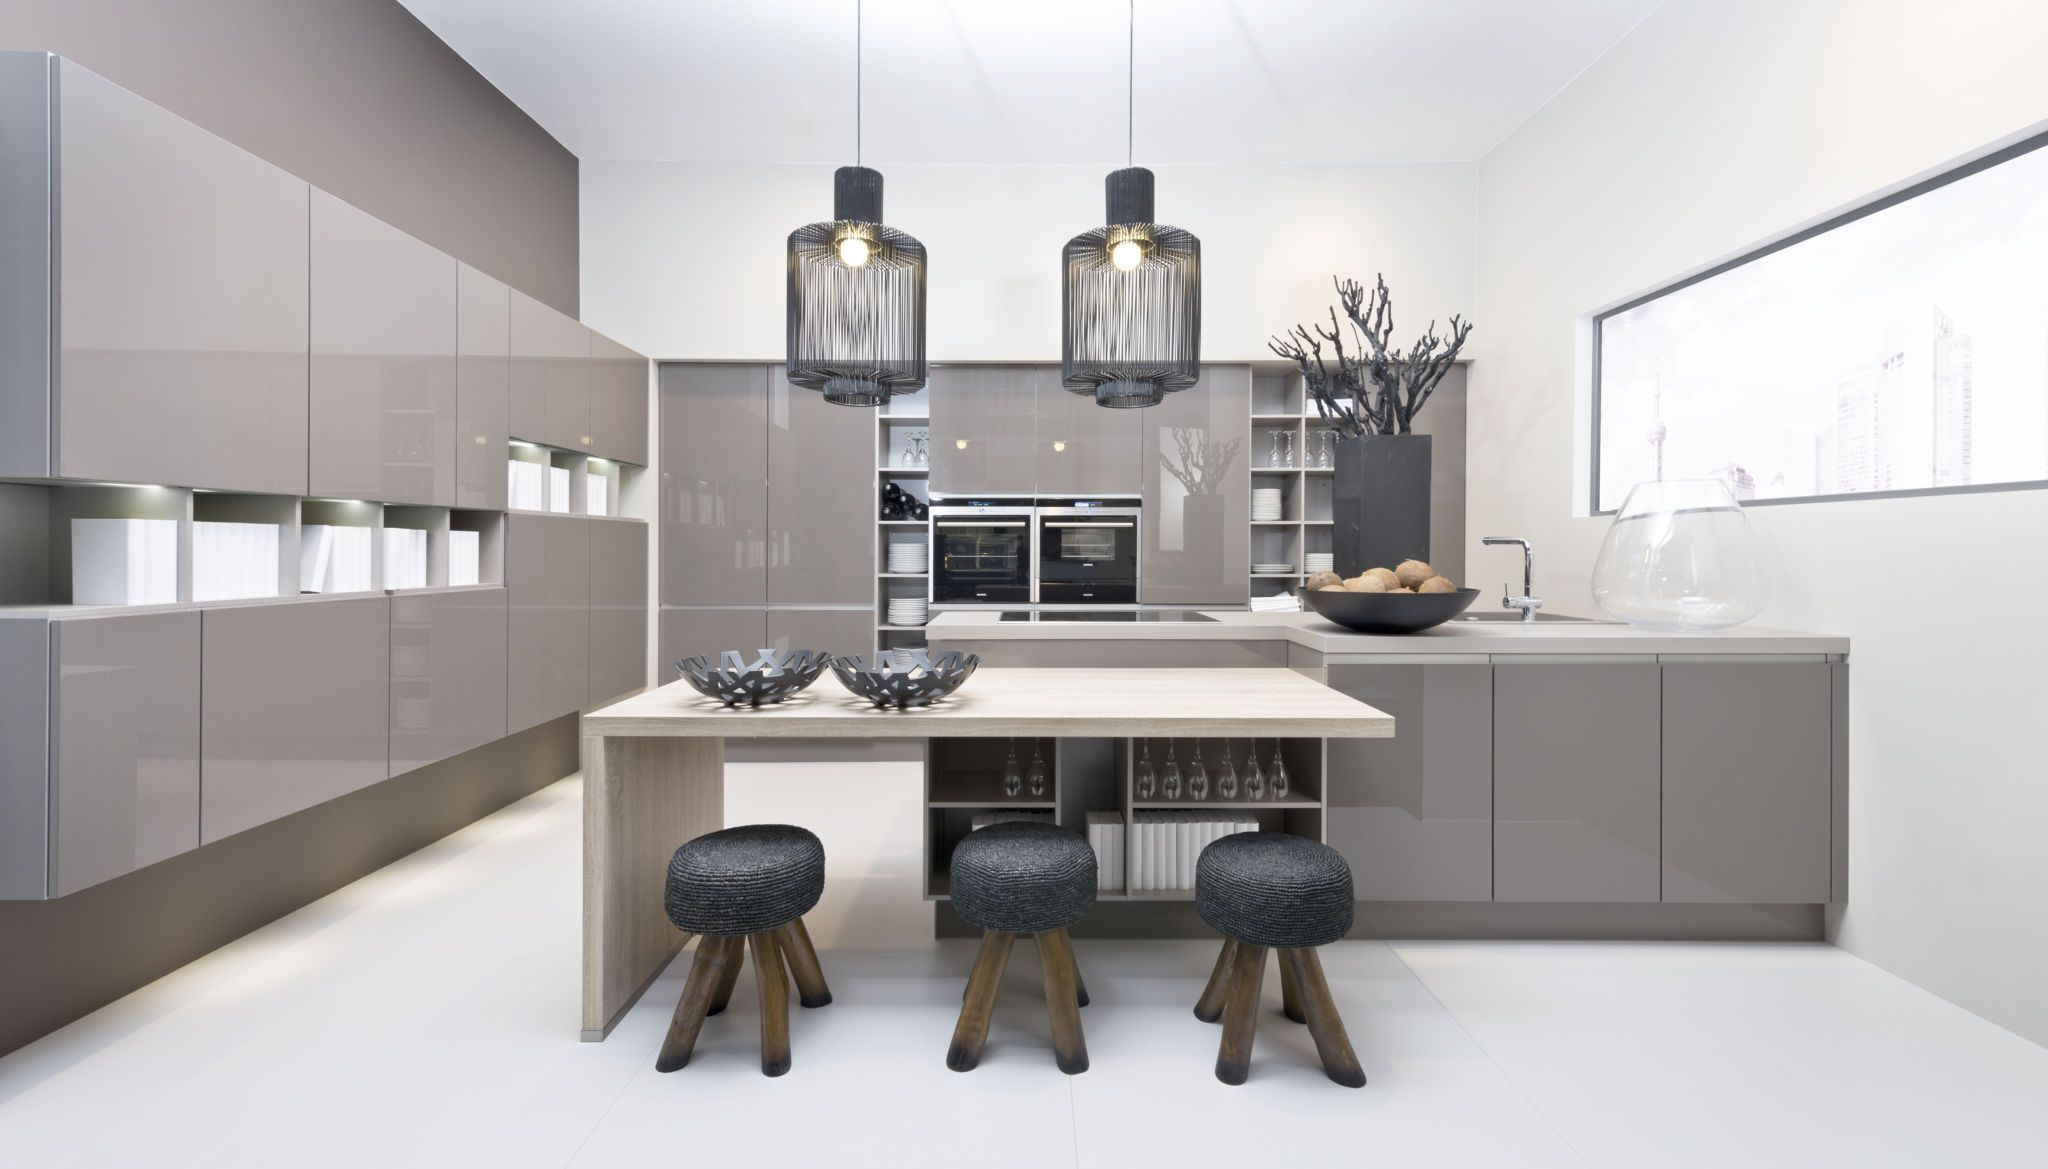 Ebstone Kitchens Offers Nolte Kitchens, Designers And Appliances